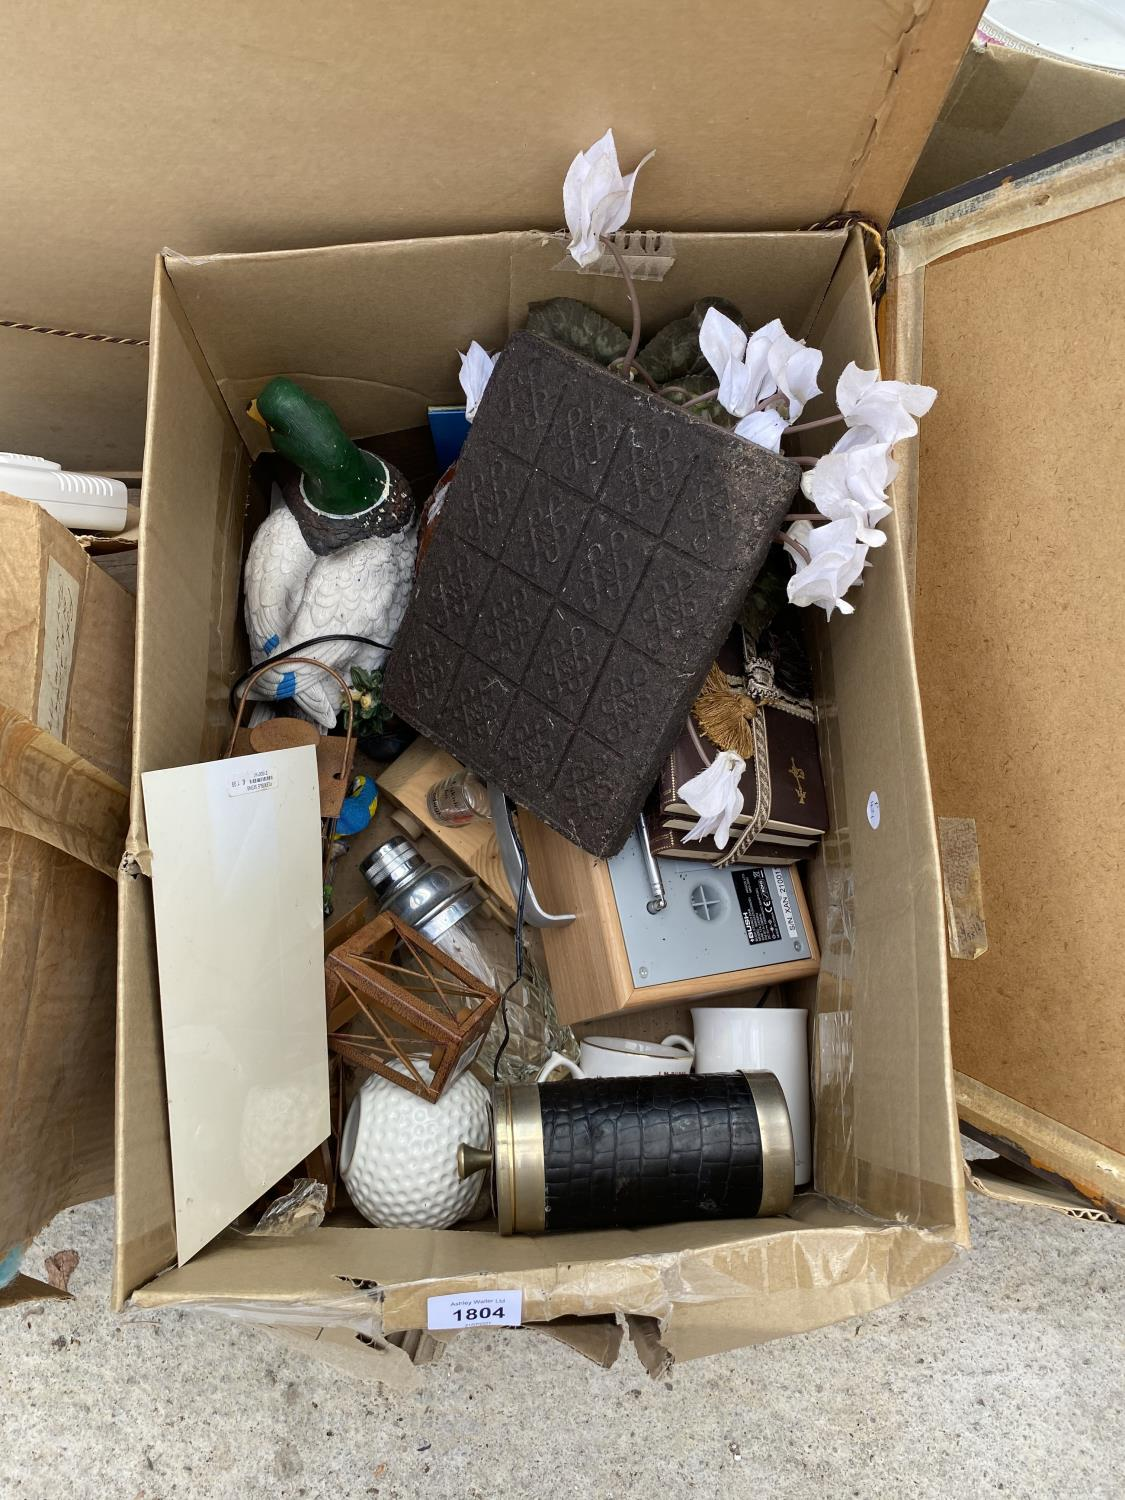 AN ASSORTMENT OF HOUSEHOLD CLEARANCE ITEMS TO INCLUDE LAMPS, A RADIO AND CERAMIC WARE ETC - Image 4 of 8